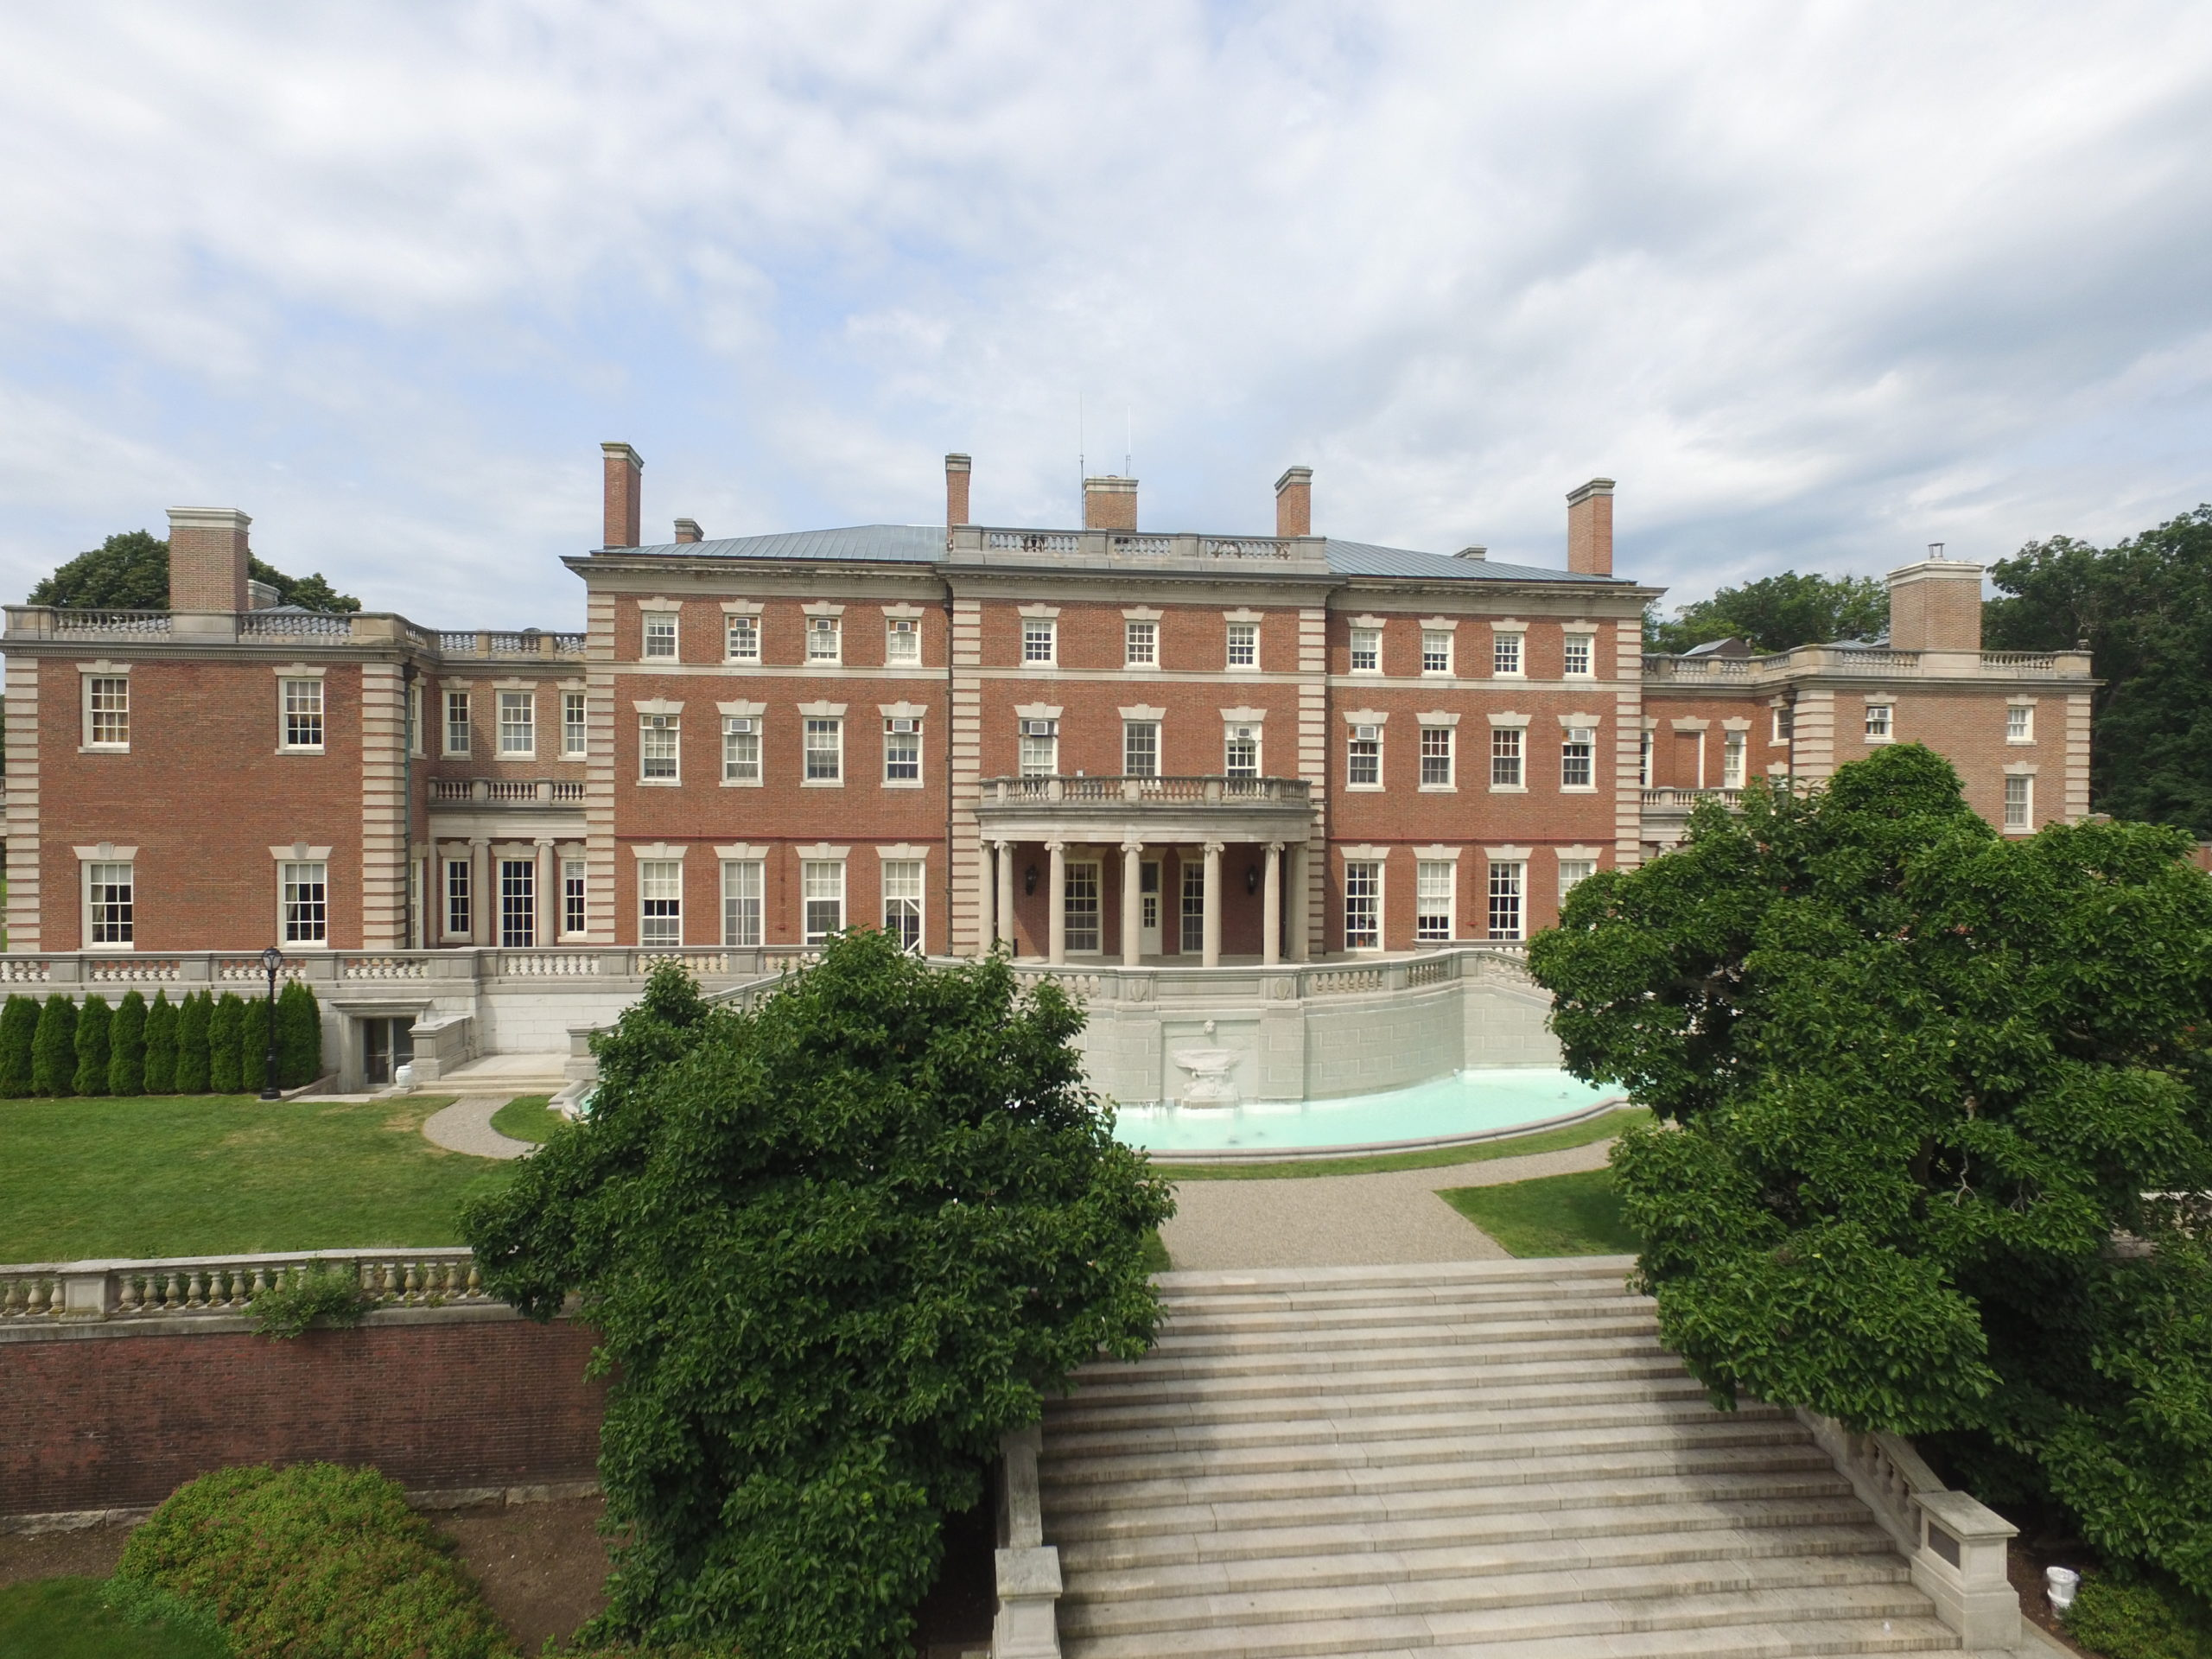 Hennessy Hall seen from behind, with a fountain and garden before it.